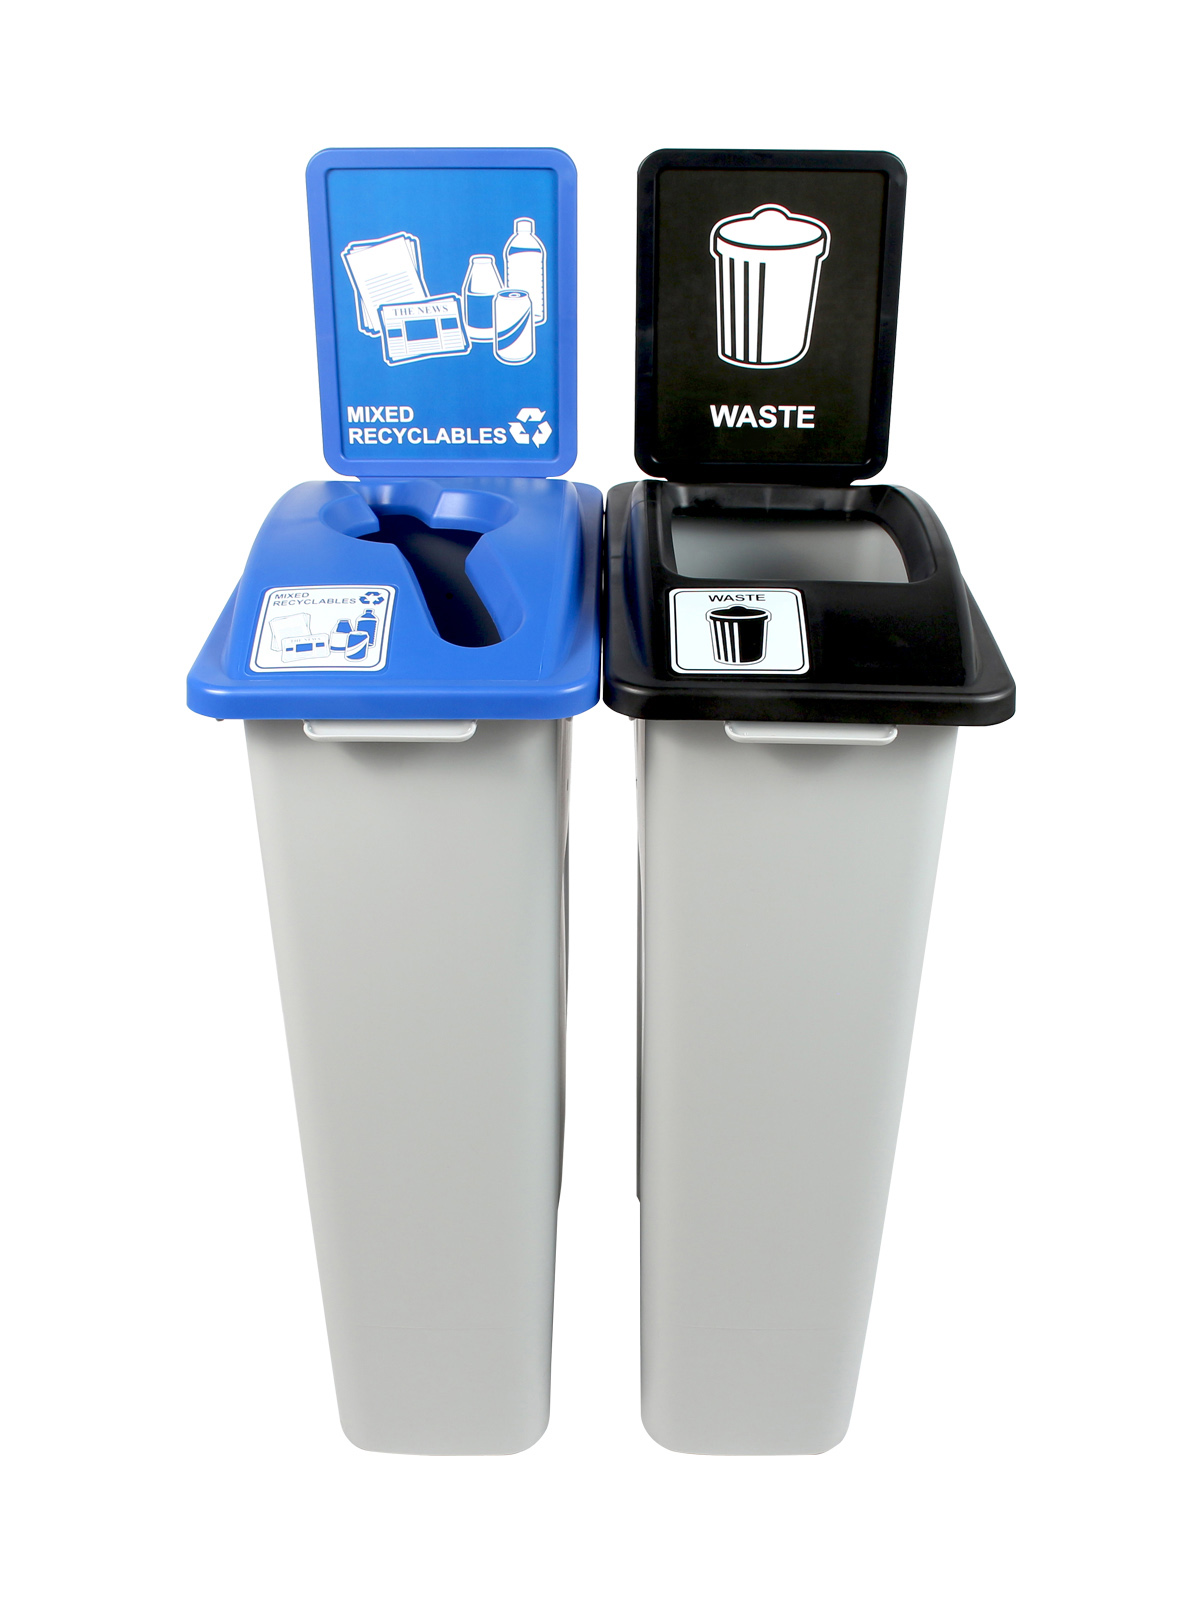 WASTE WATCHER - Double - New Jersey Compliant - Mixed Recyclables-Waste - Mixed-Full - Grey-Blue-Black title=